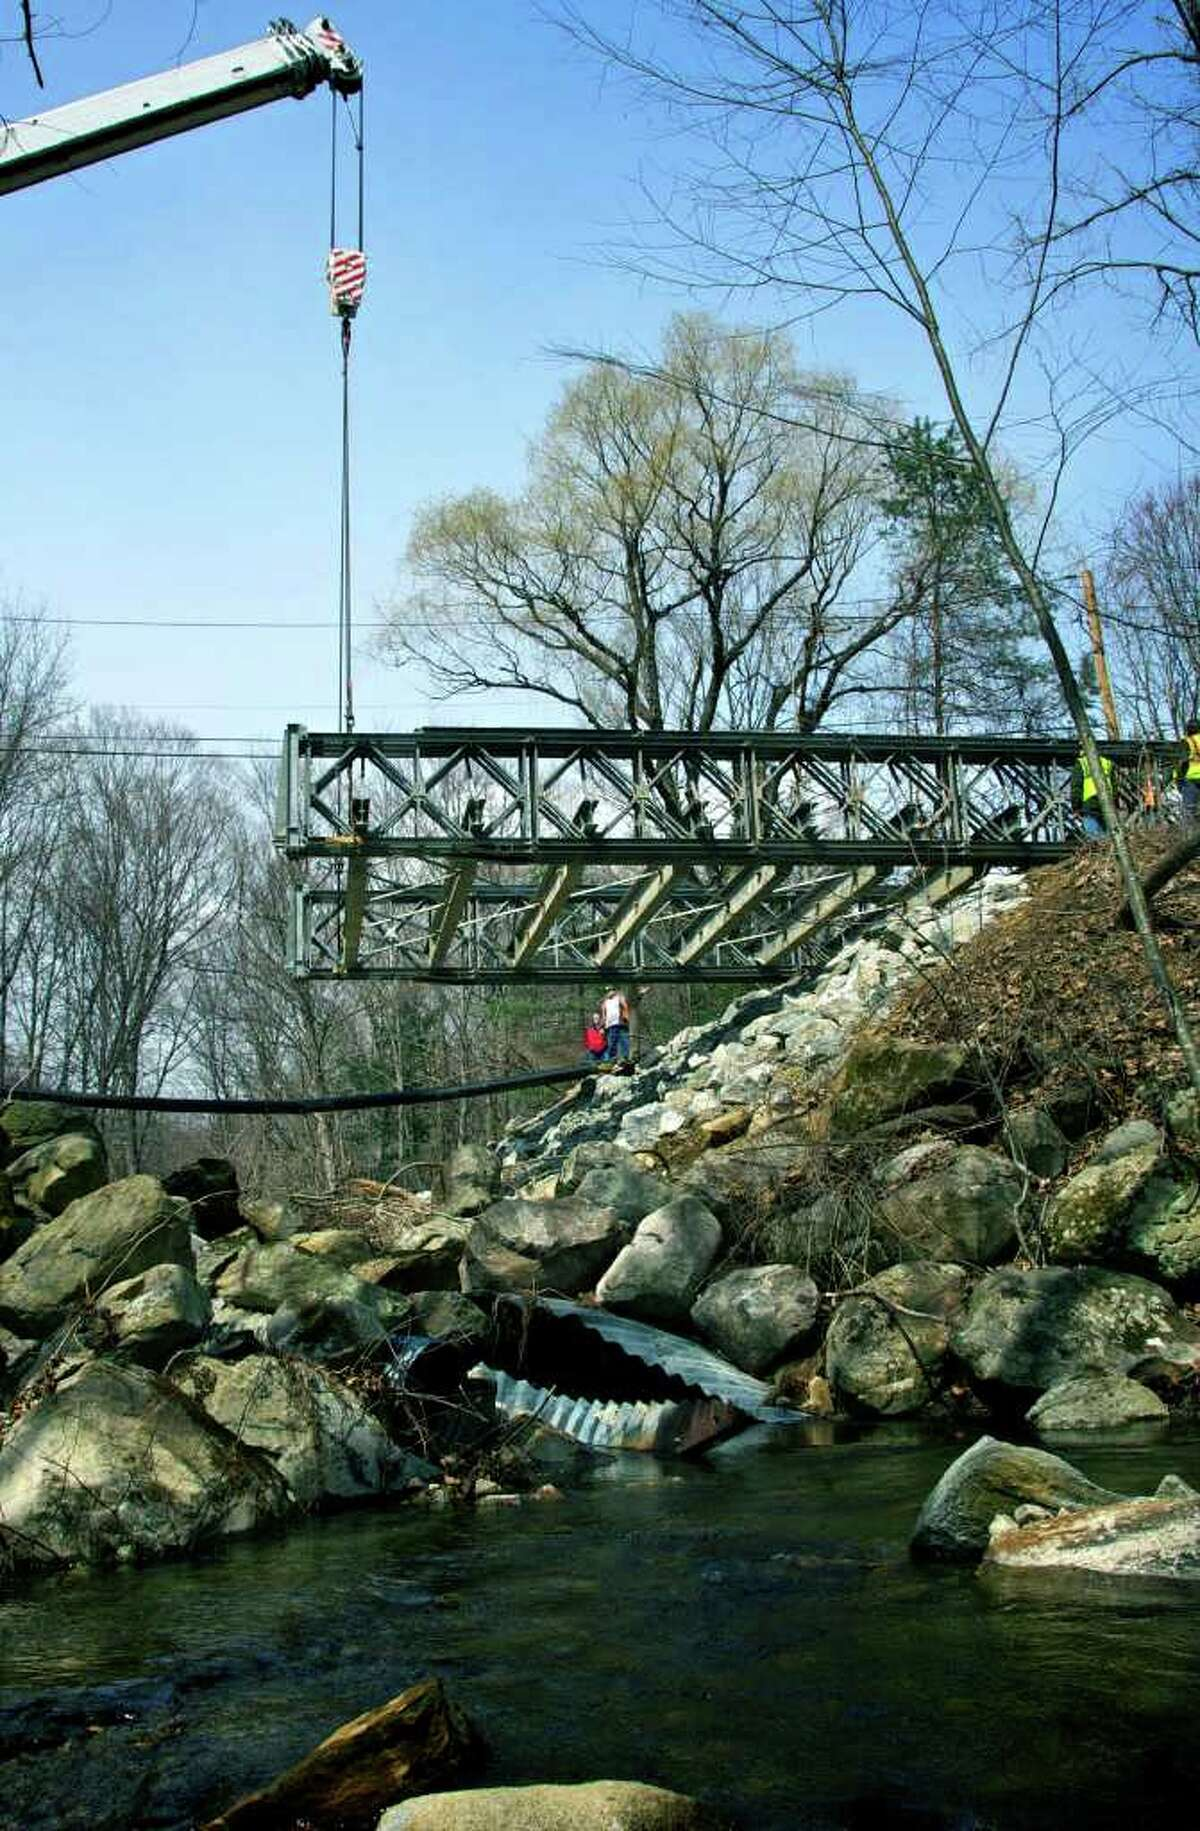 This turtle's eye view of Wednesday proceedings shows a temporary, 100-foot metal bridge being placed over the chasm on Chinmoy Lane in New Milford caused March 7 by rushing waters of the Merryall Brook. The brook's tranquil flow here belies the torrent that ripped away a large section of the Merryall district street.